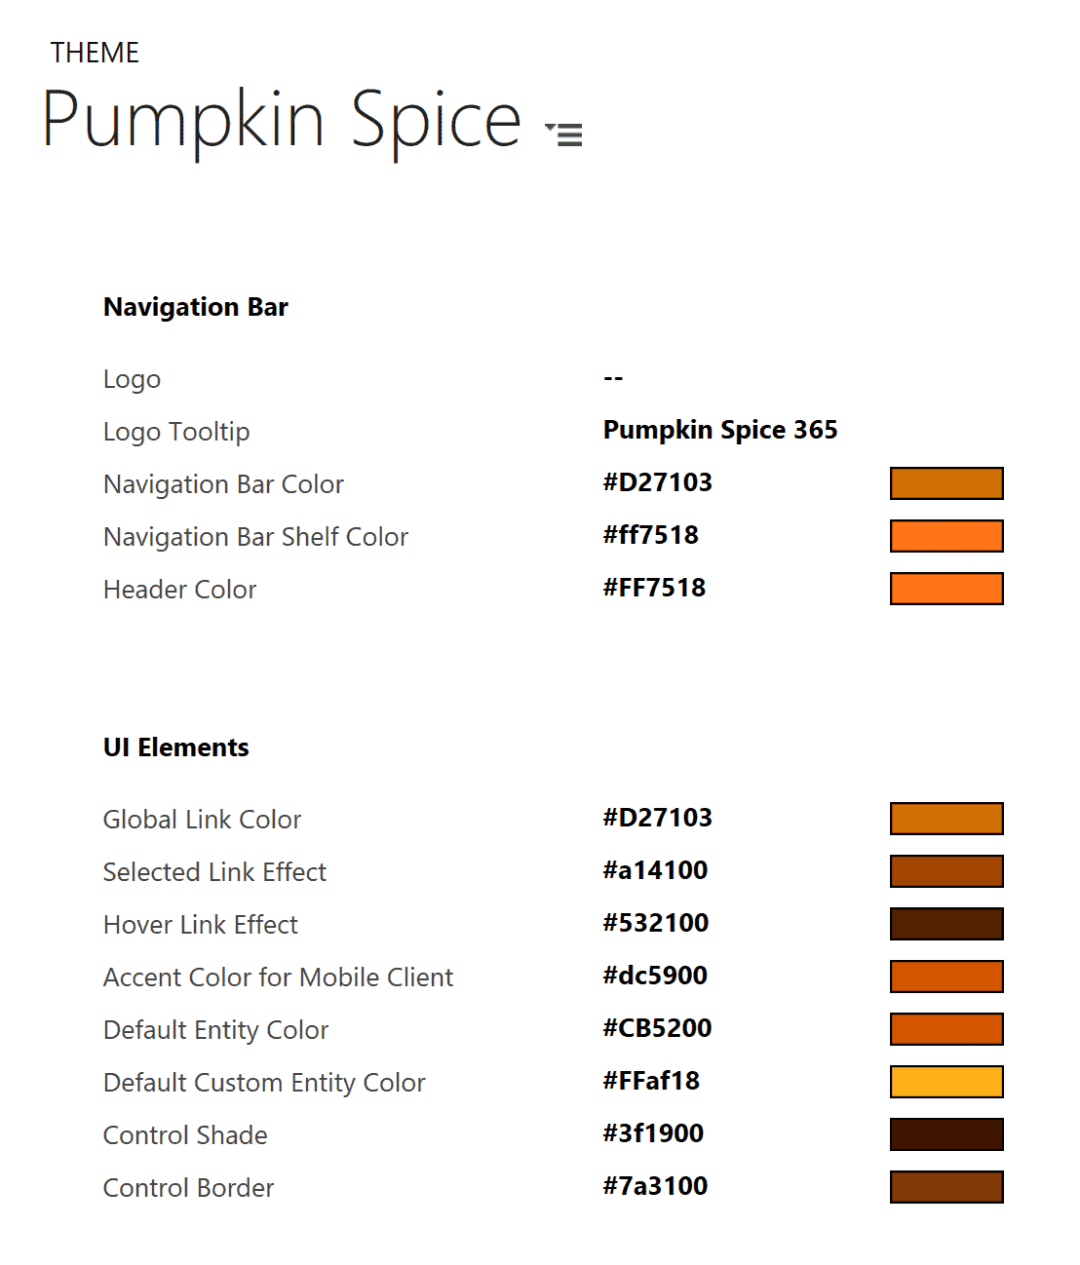 enCloud9 | Microsoft Dynamics 365 CRM Consultants Autumn is here, so it's time to upgrade to Pumpkin Spice CRM Dynamics 365 CRM QuickTips enCloud9 Microsoft Dynamics 365 Microsoft Dynamics CRM